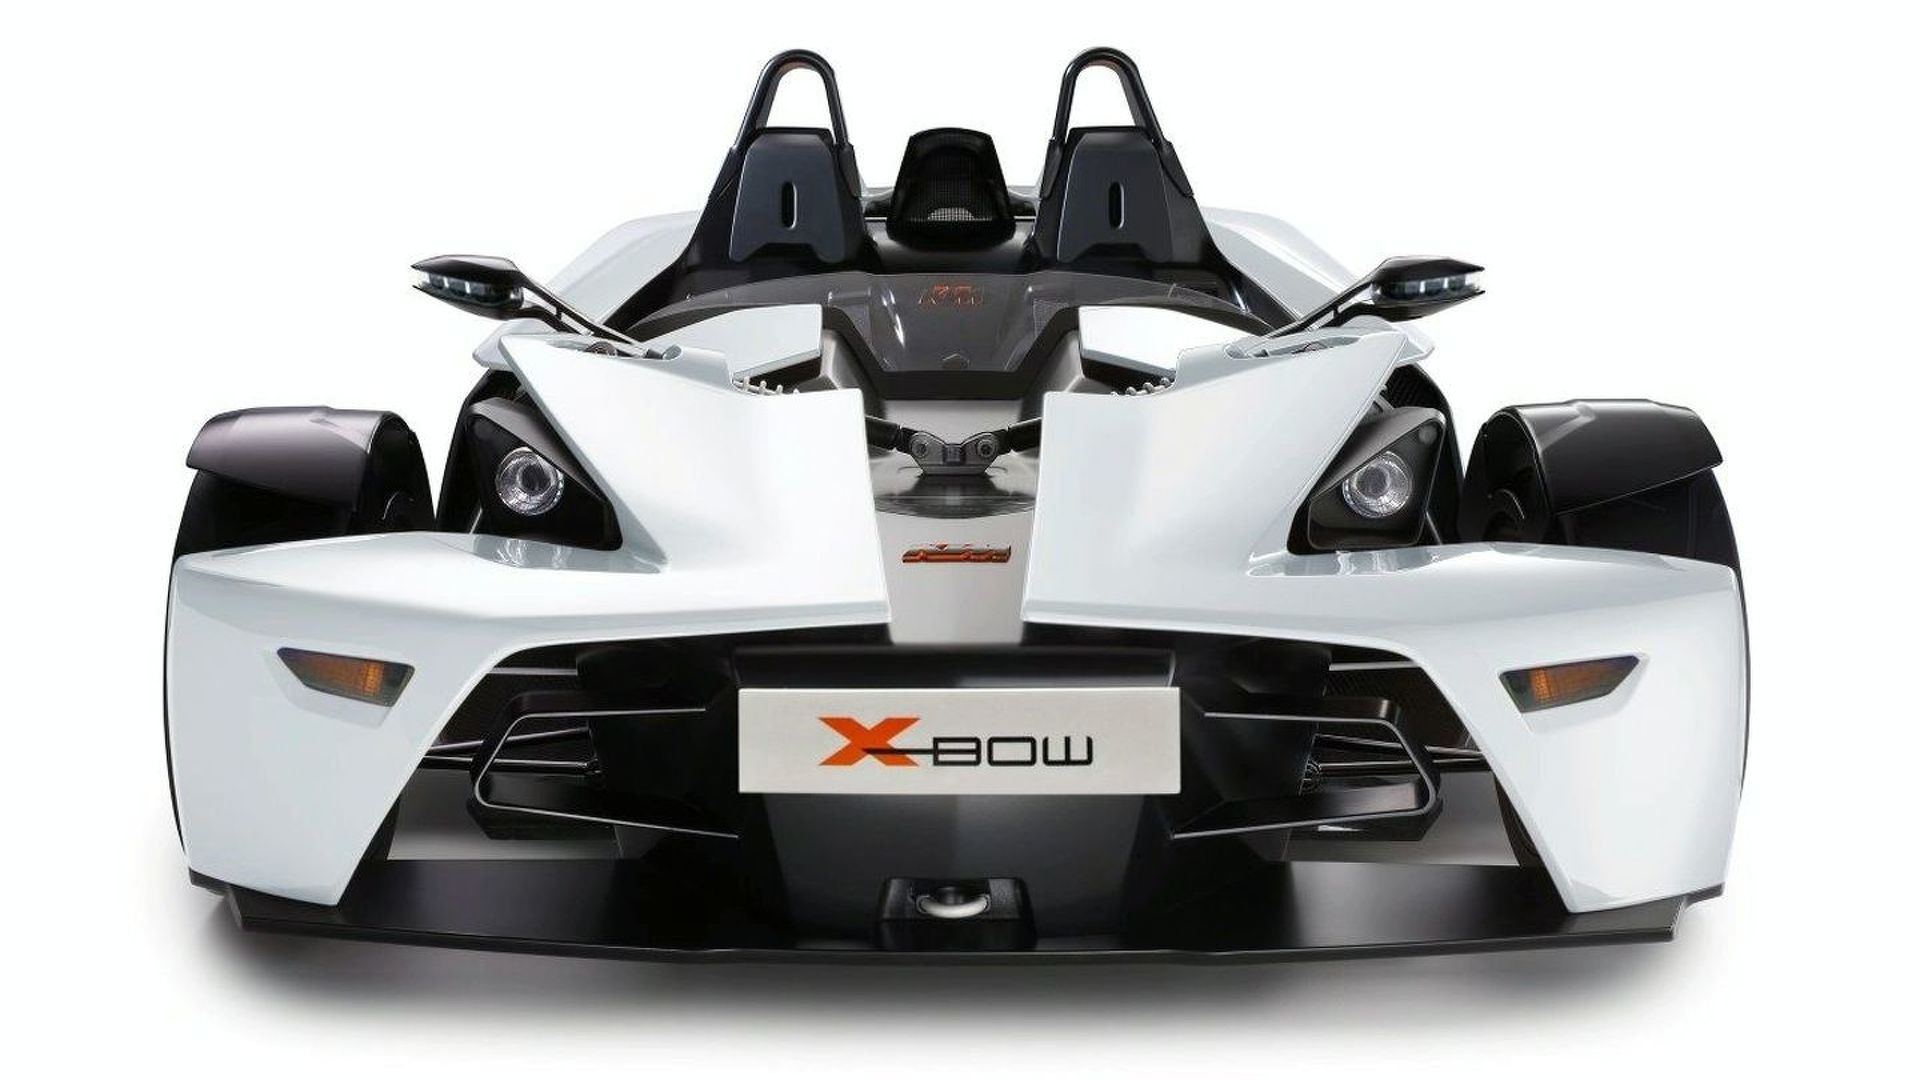 KTM X-Bow to Make UK Debut at Autosport